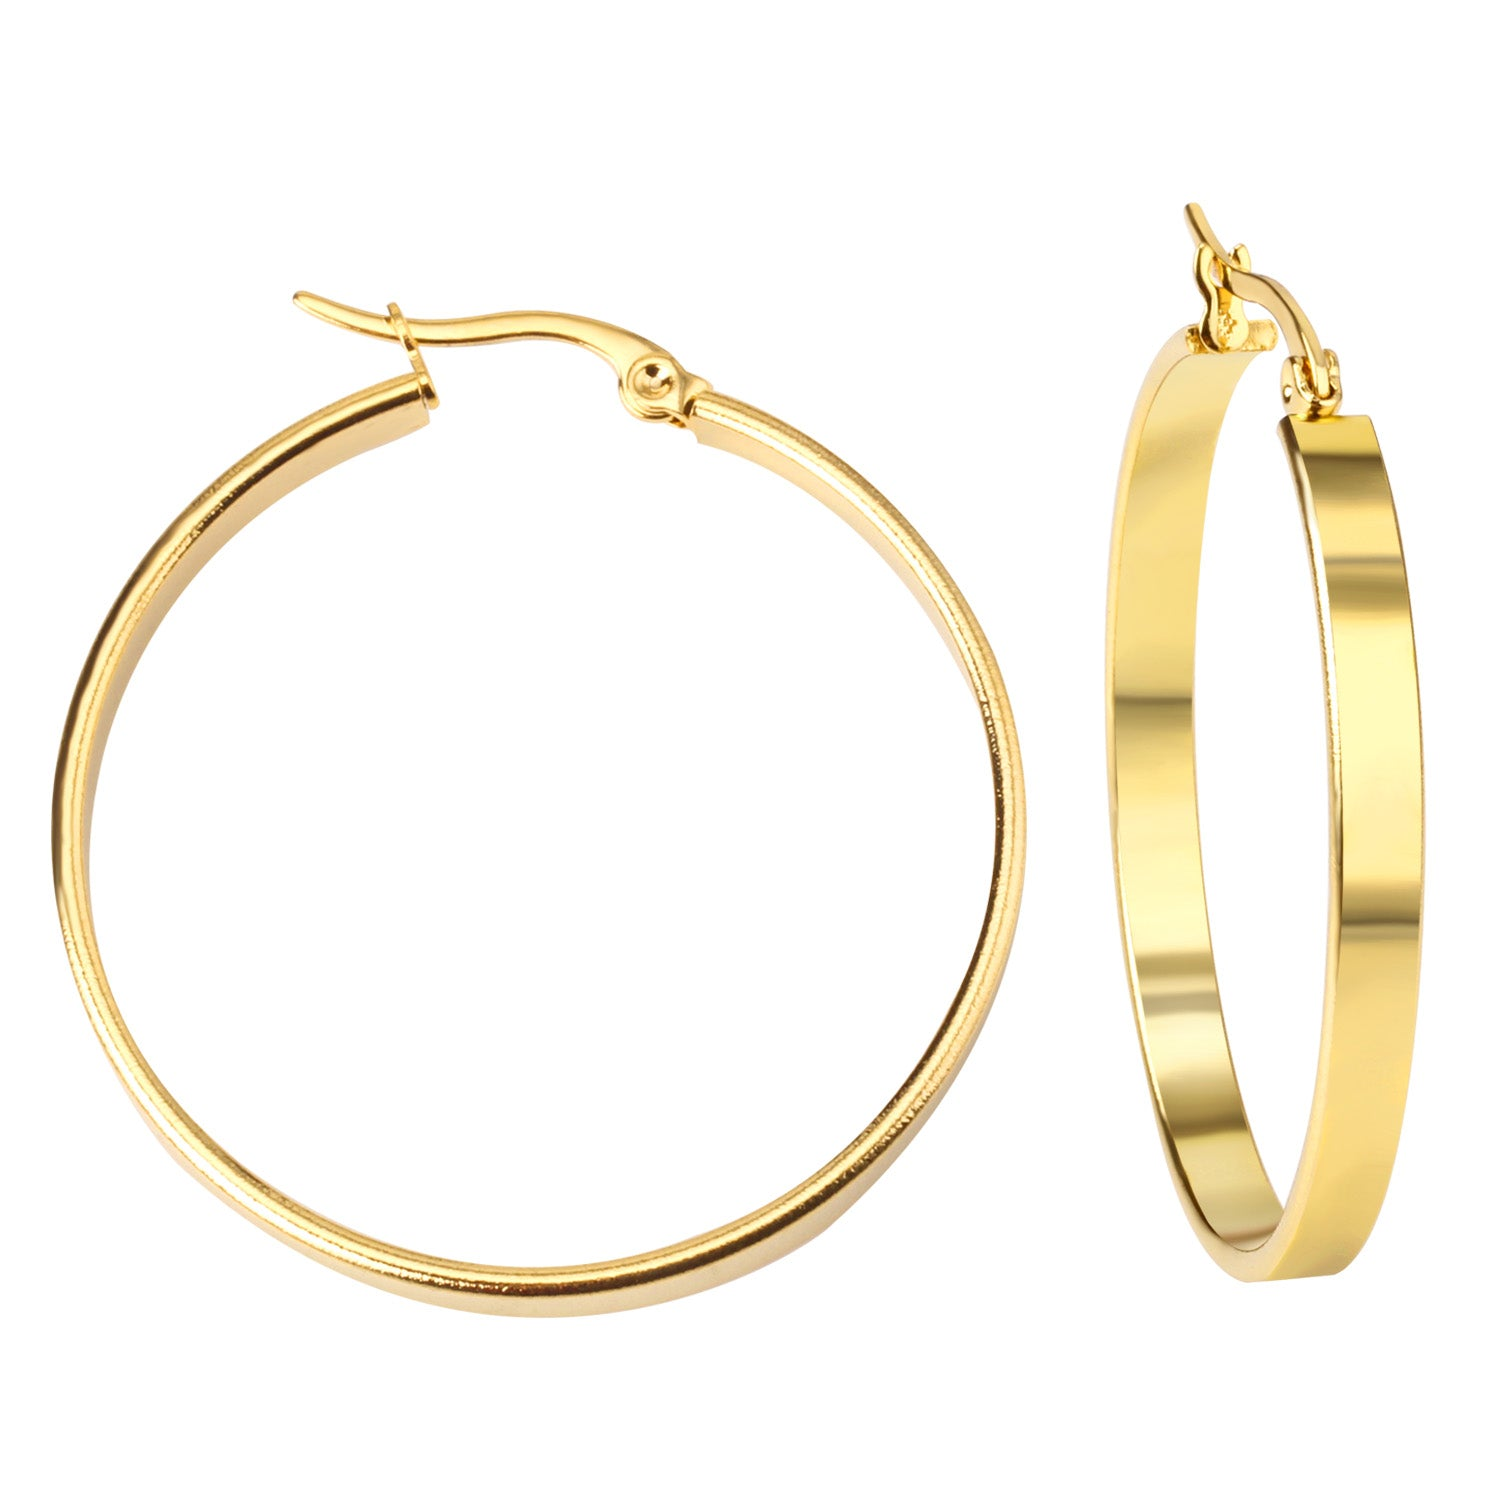 bamboo earrings tone us gold shaped hoop jewellery heart icing